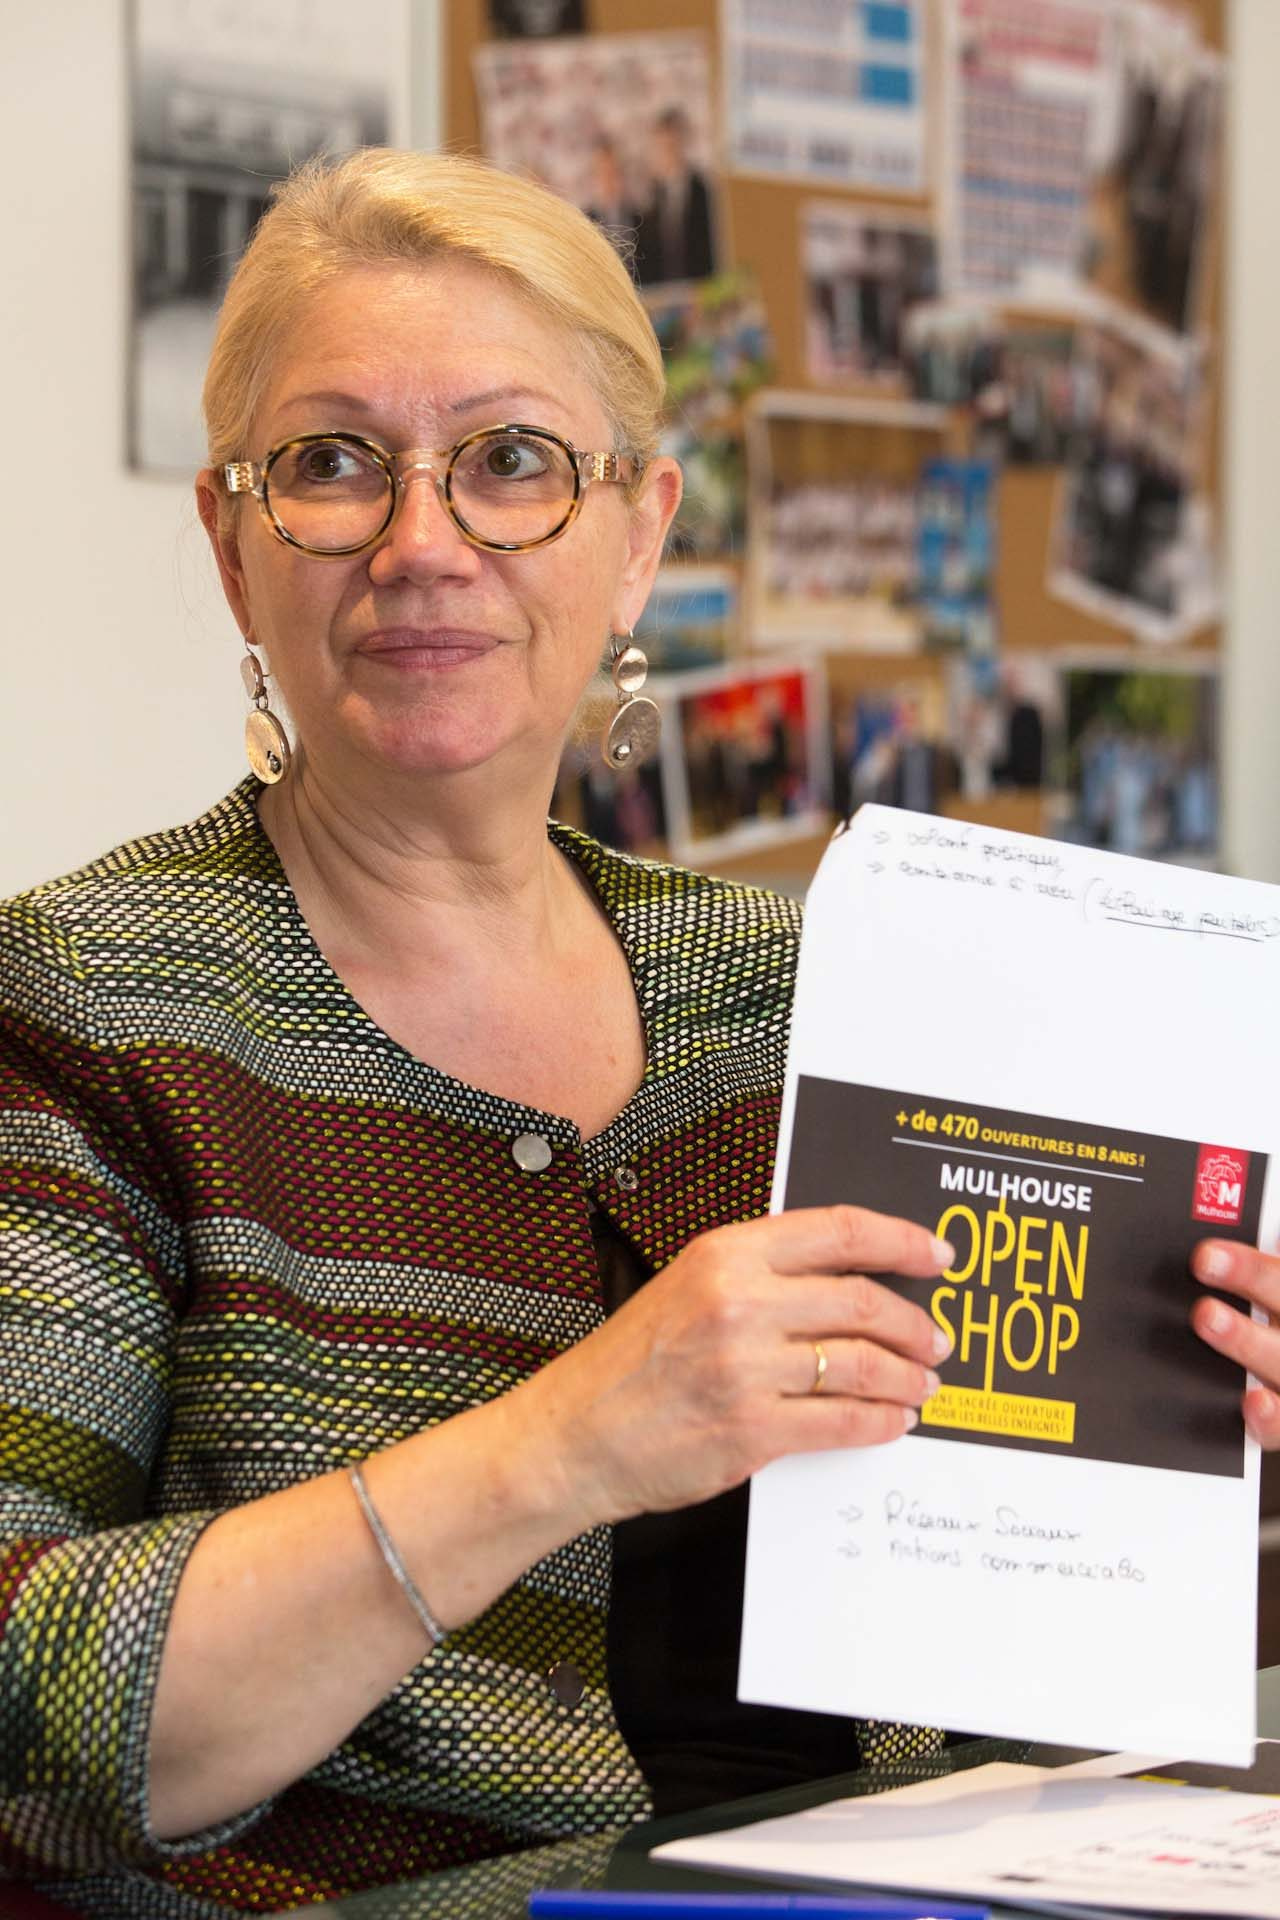 "In her town hall office, the mayor, Michèle Lutz, who once ran a hair salon in Mulhouse, says the town must now move into a second phase where the vibrancy of the centre extends to the surrounding neighbourhoods. ""The town centre is buzzing now, but we can't just concentrate on the small central perimeter, nor simply on shops – there has to be a vision of the town as a whole,"" she says."